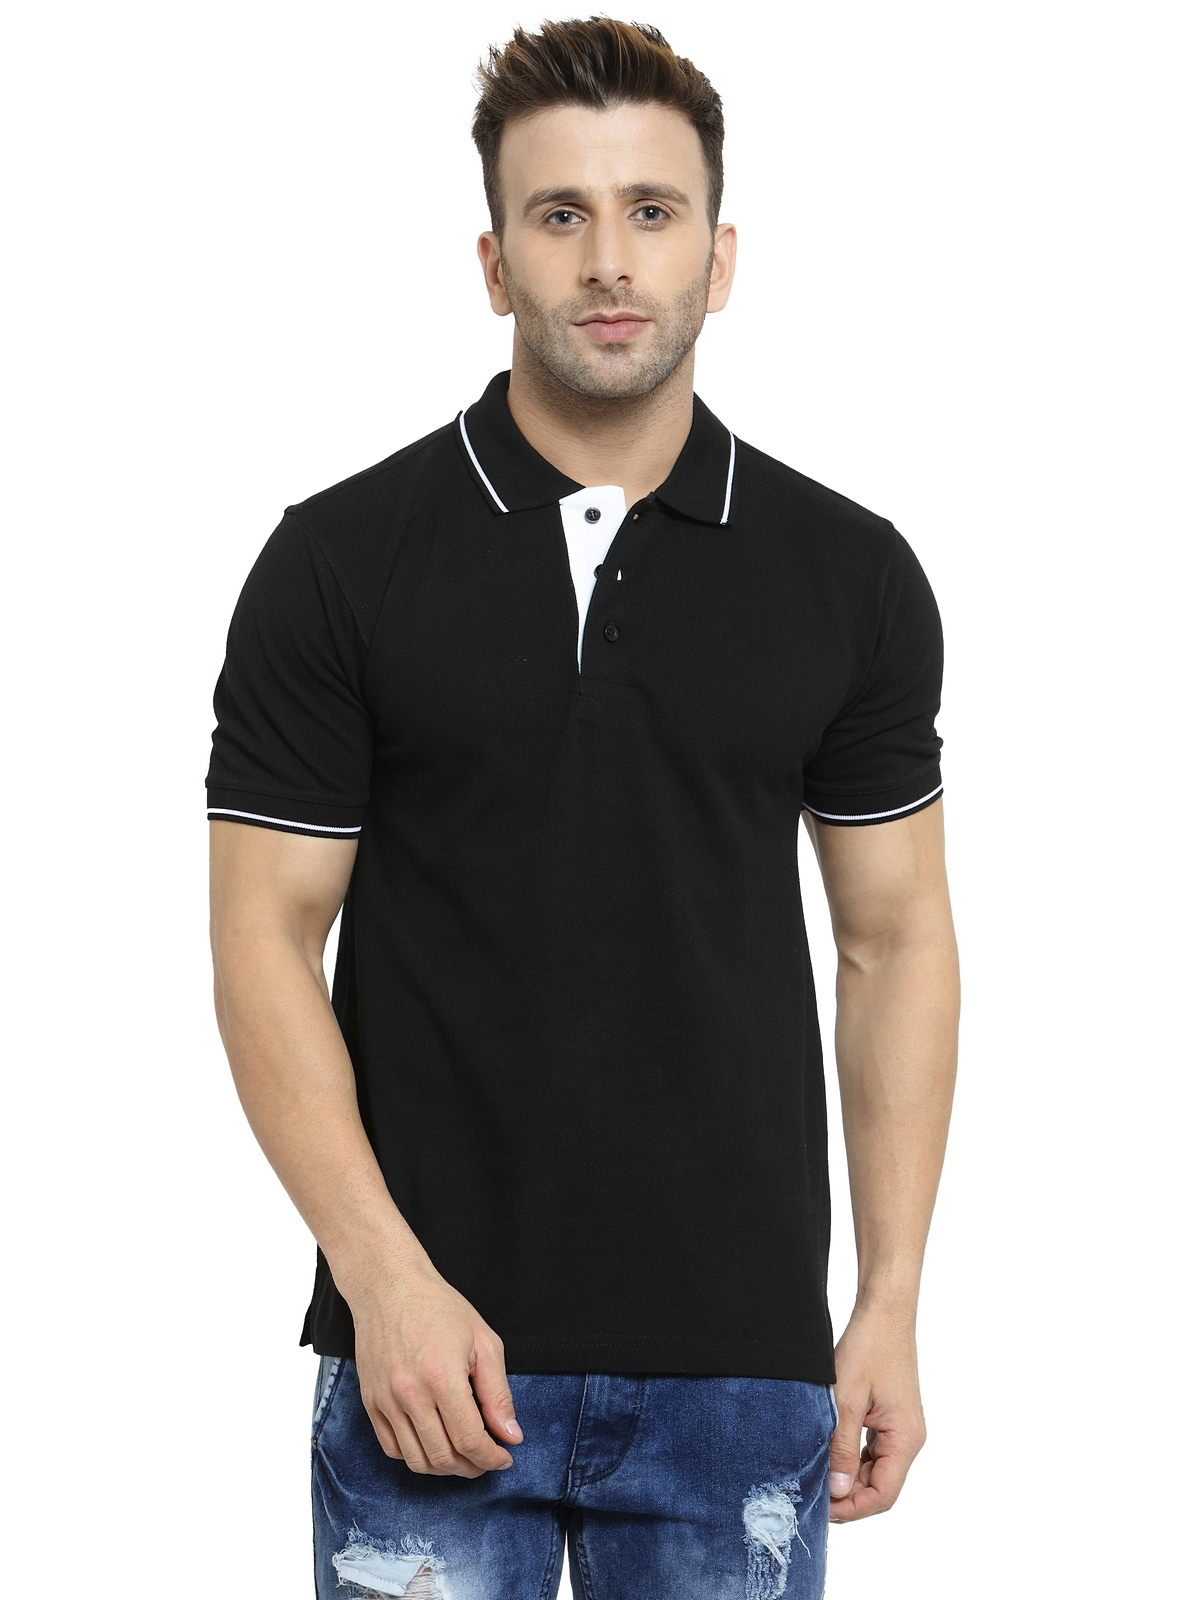 Scott International Men's Black Organic Cotton Polo T-shirt